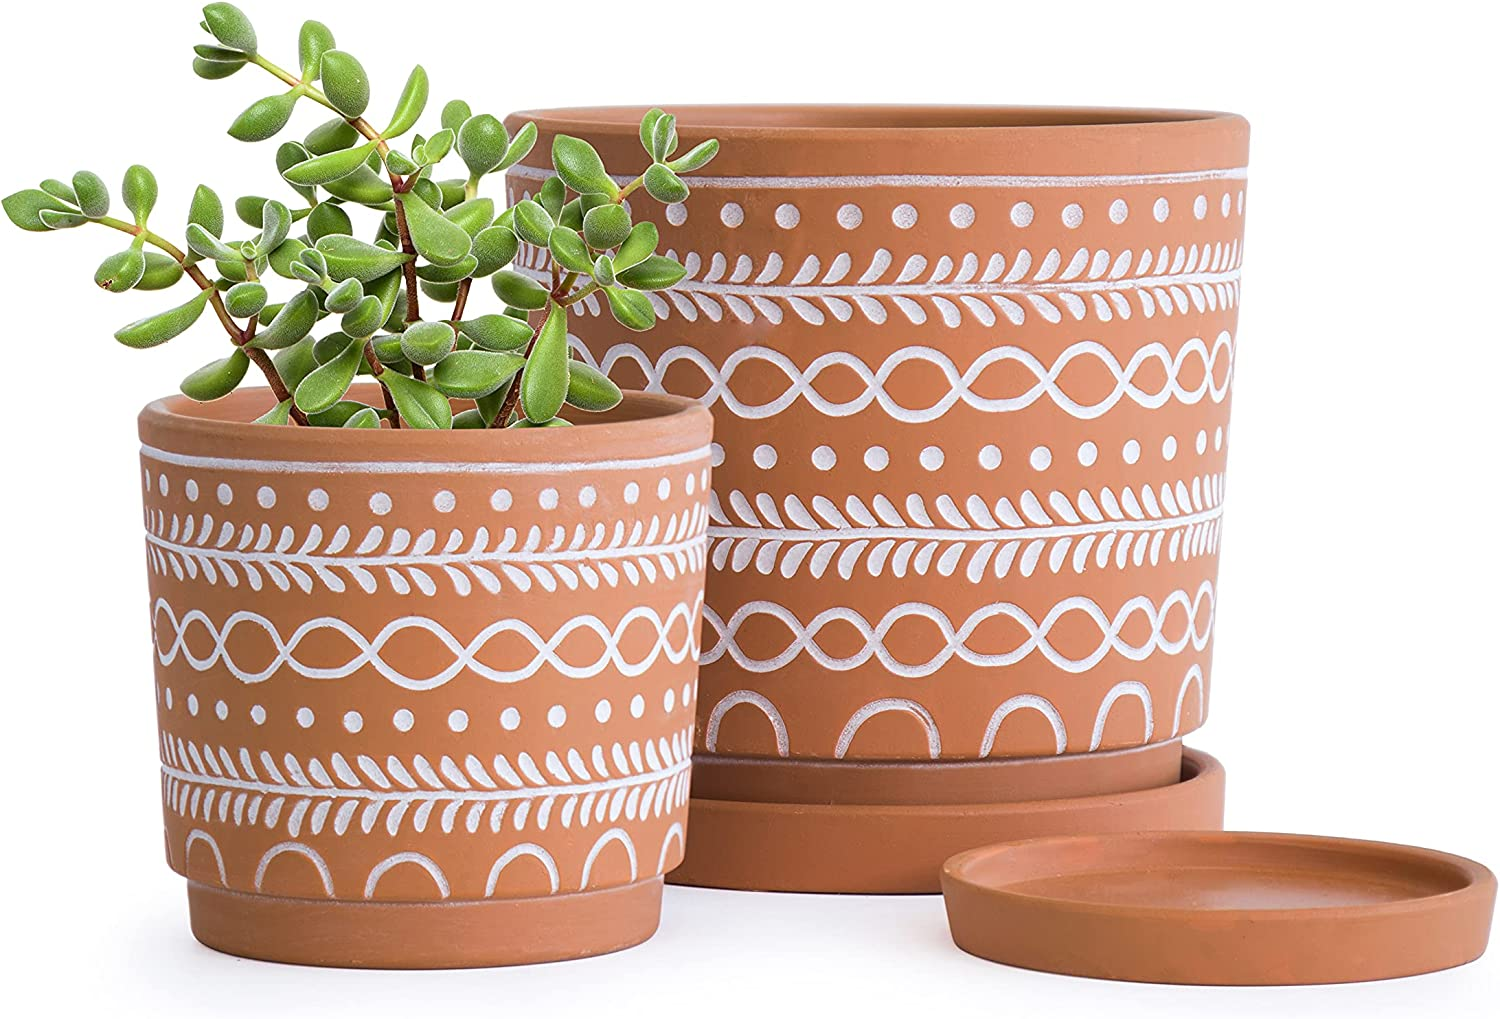 Set of 2 Ripple Indianapolis Mall Pattern Planter Fashion Pot 4.5 Inch and 6.5